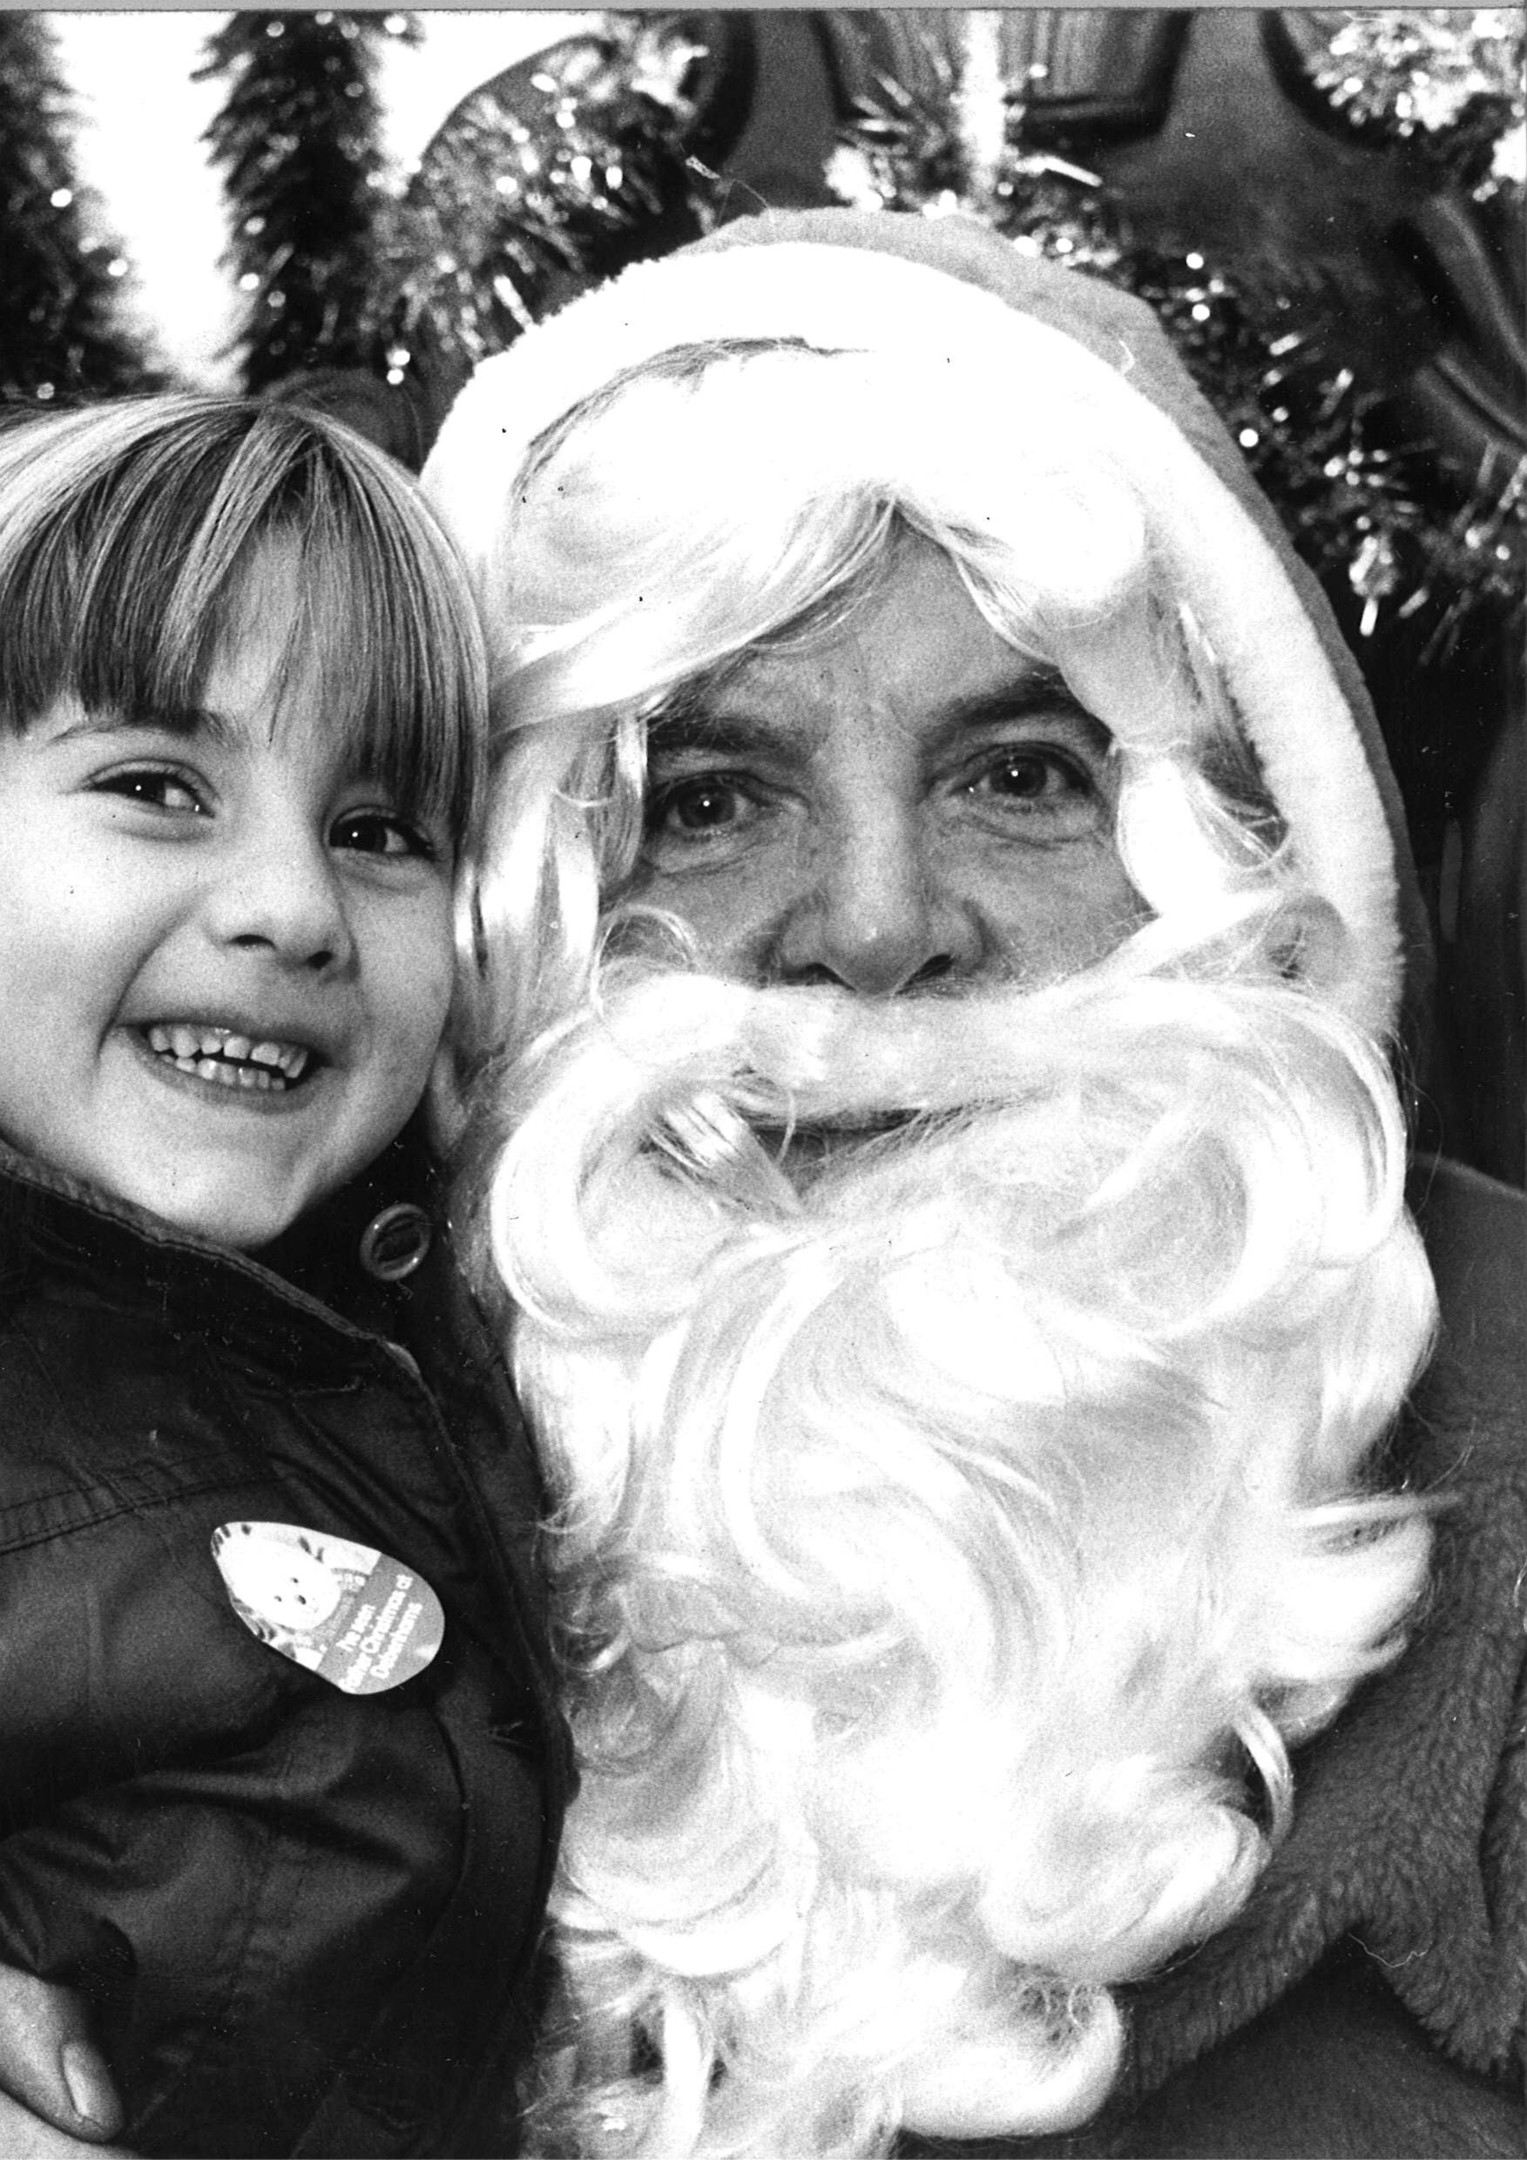 Cuddling up to Santa is Julie Wallace, aged 4